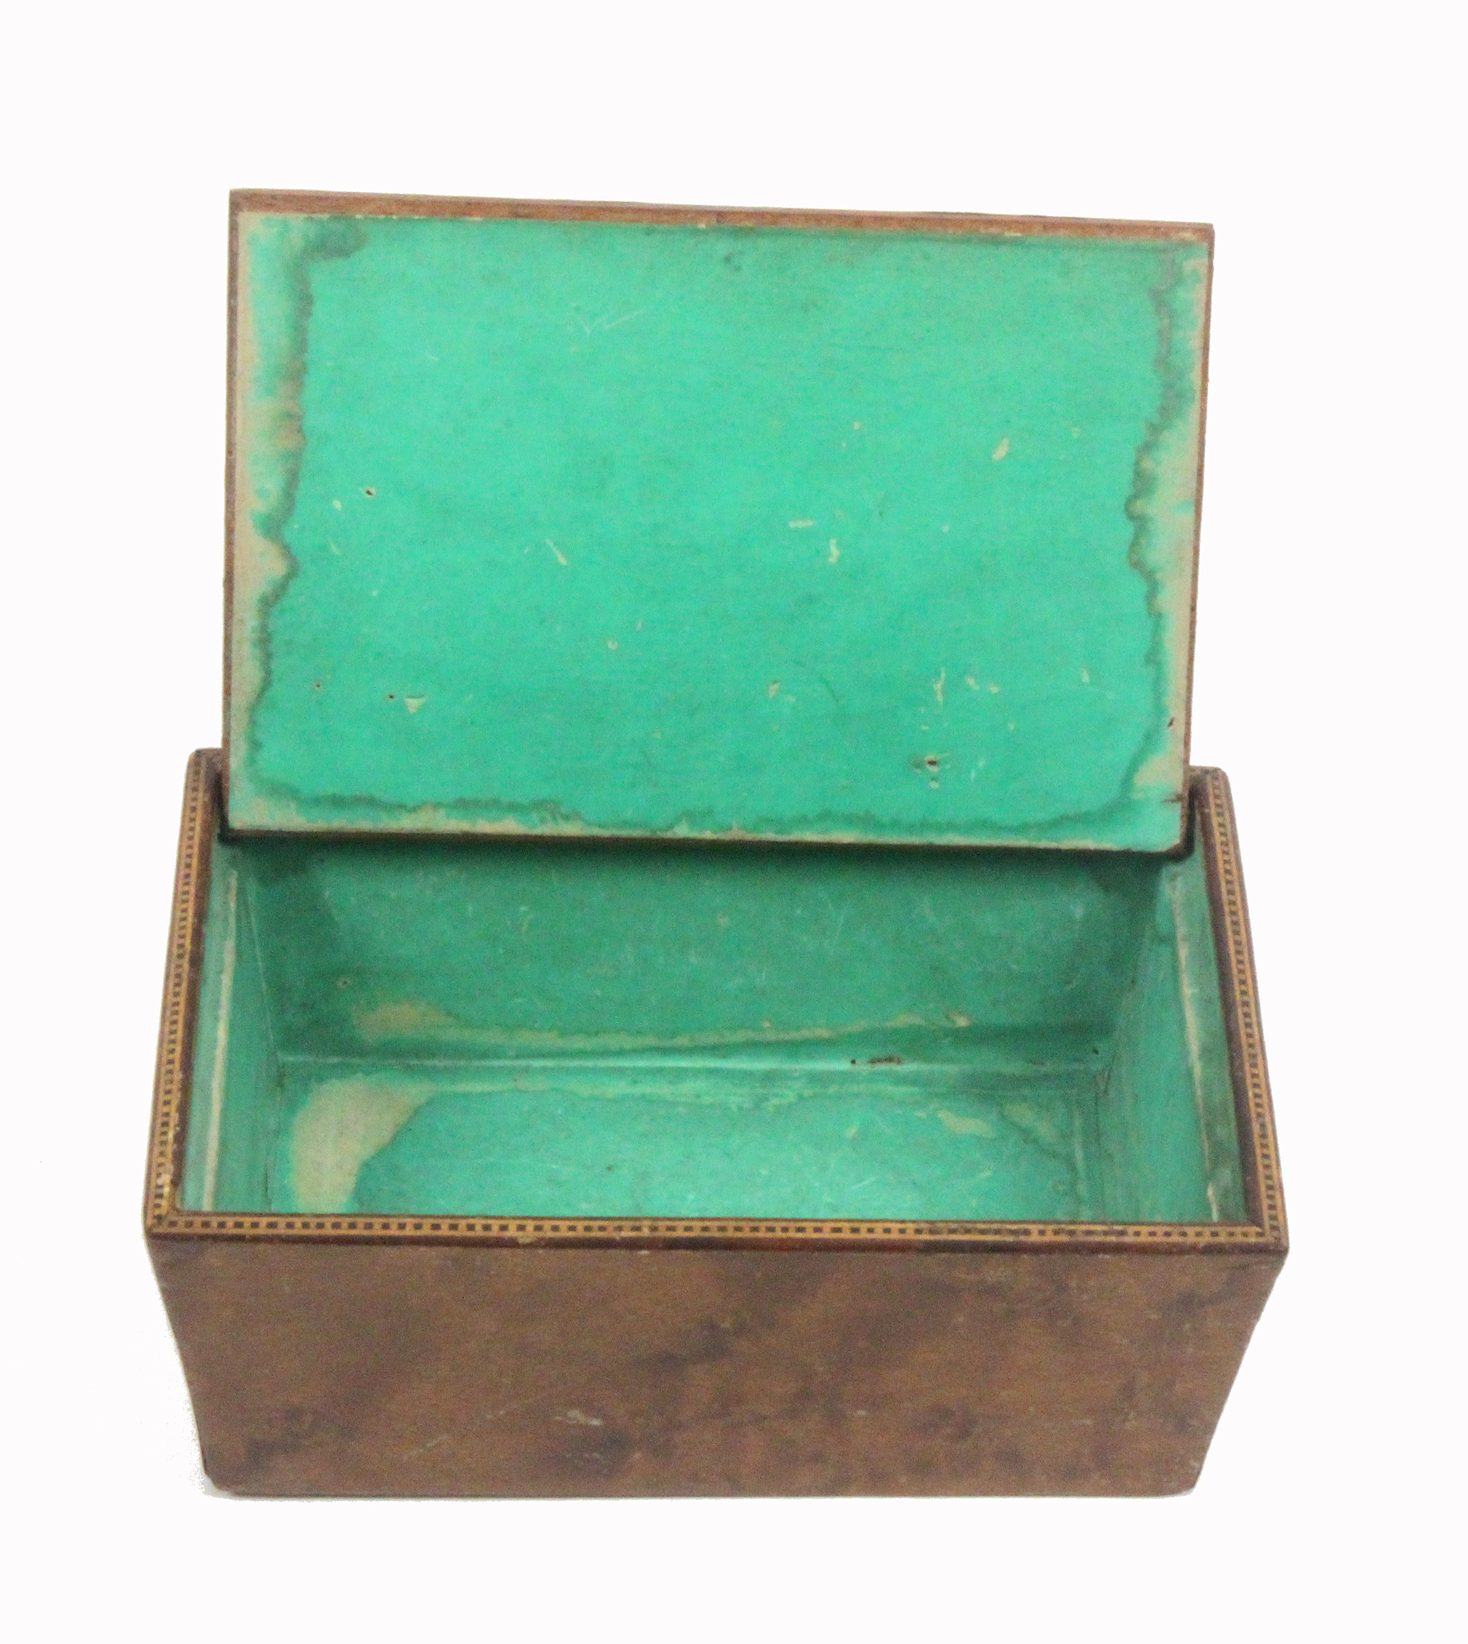 A Tunbridge ware box of rectangular form, with angled burr veneered sides, the pin hinge lid with - Image 2 of 2